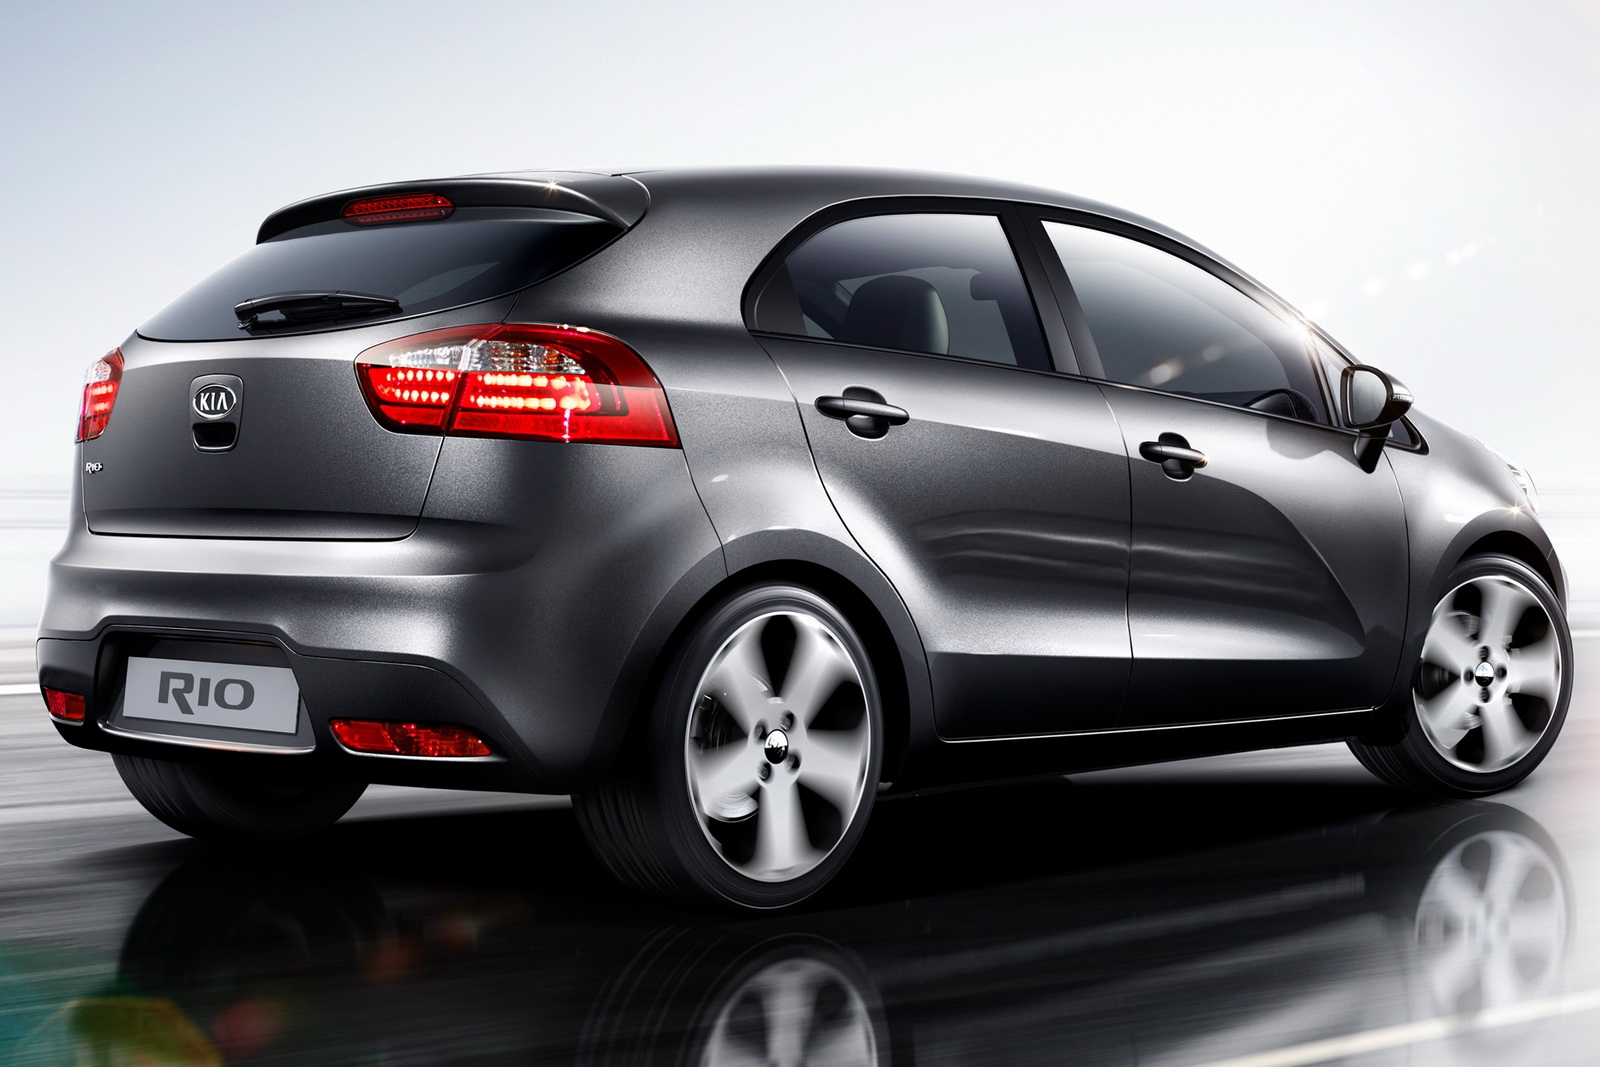 2016 Kia Rio Wallpaper HD 1600x1067